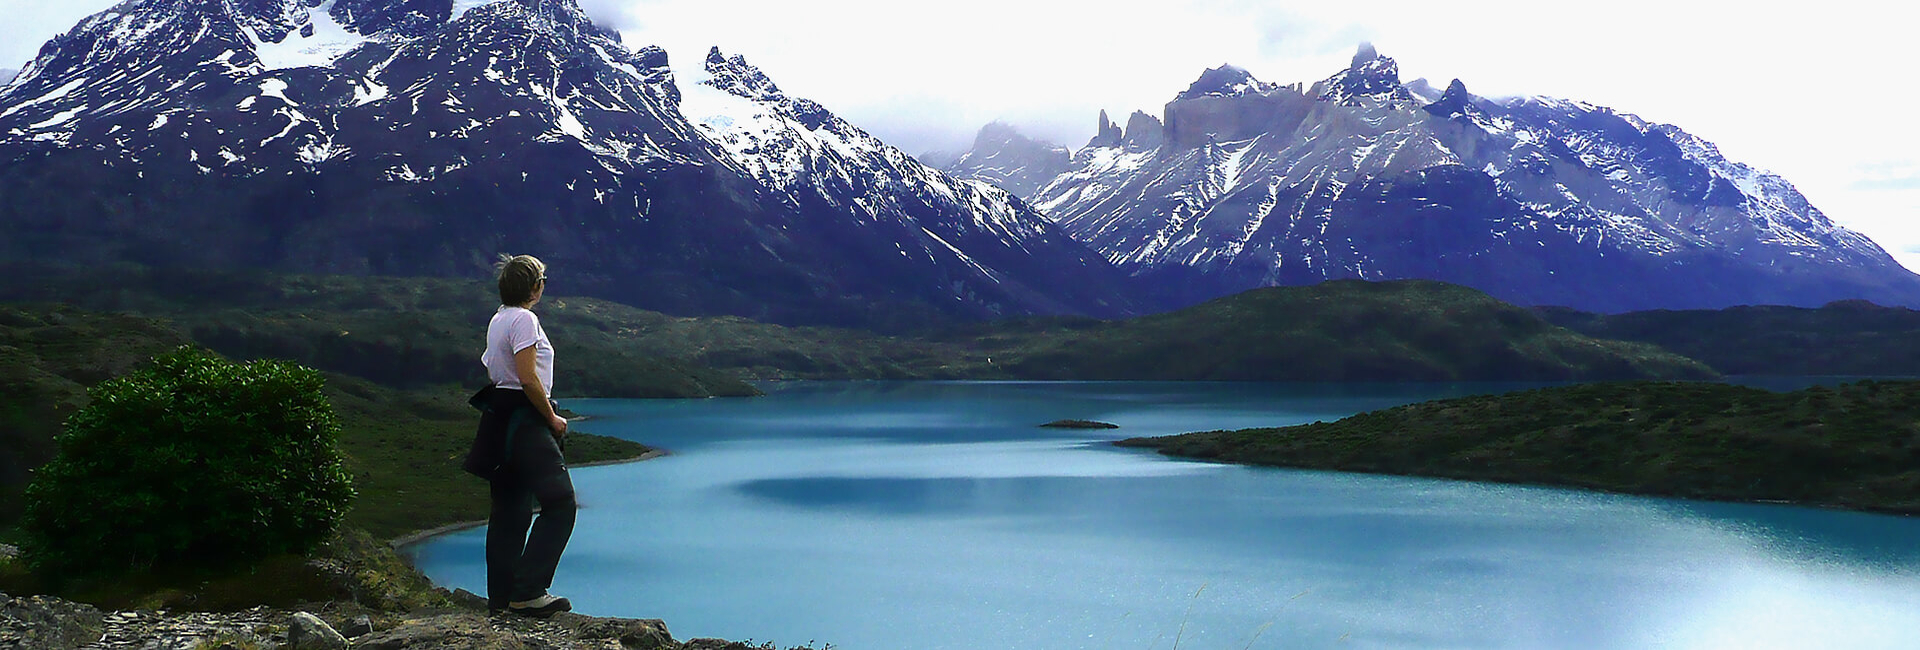 Lago Pehoe and Los Cuernos, the Horns